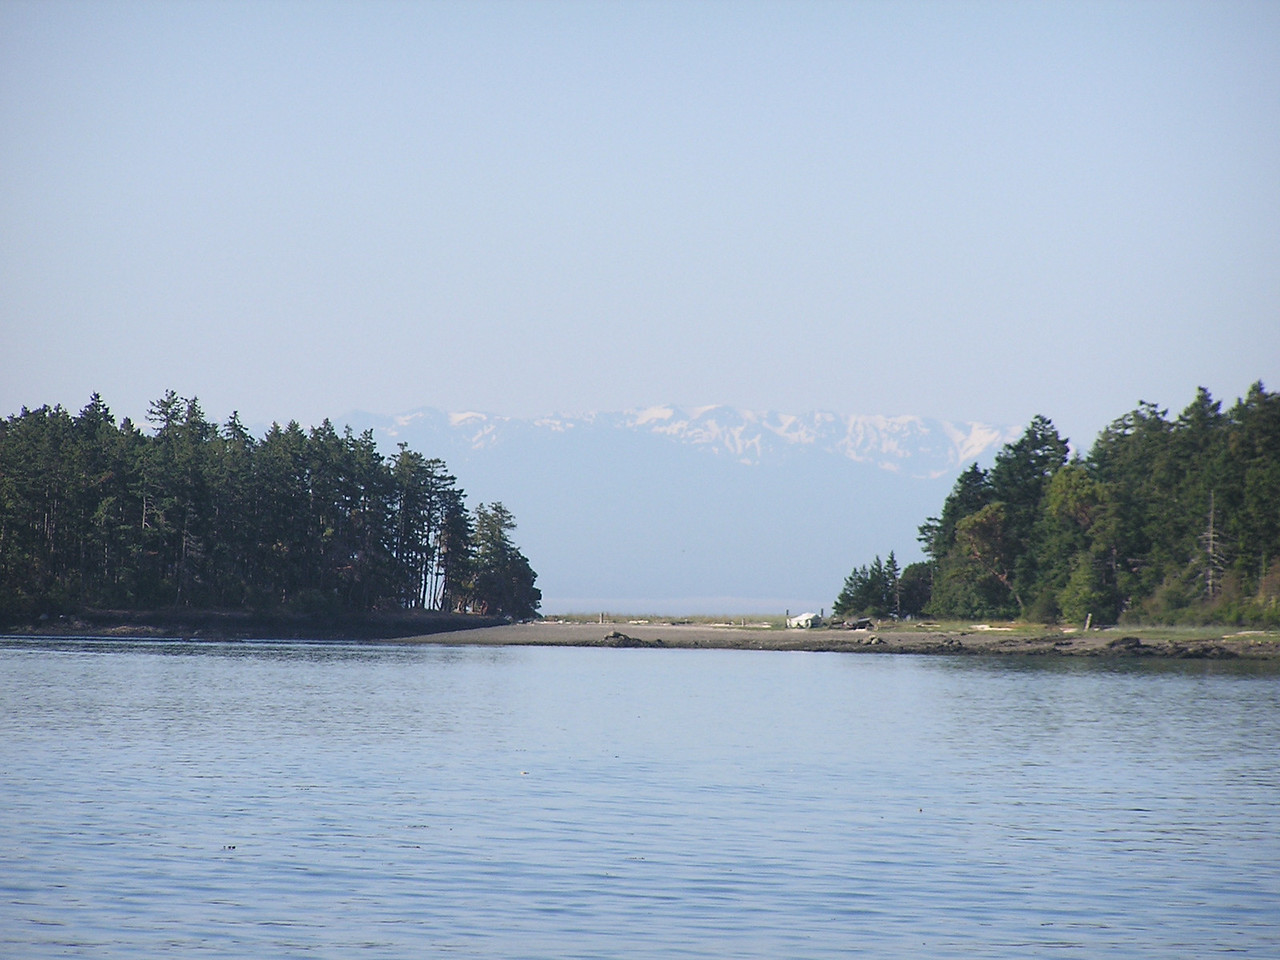 Day 6:  Sailing to Stuart Island and then continuing to Rosario on Orcas Island